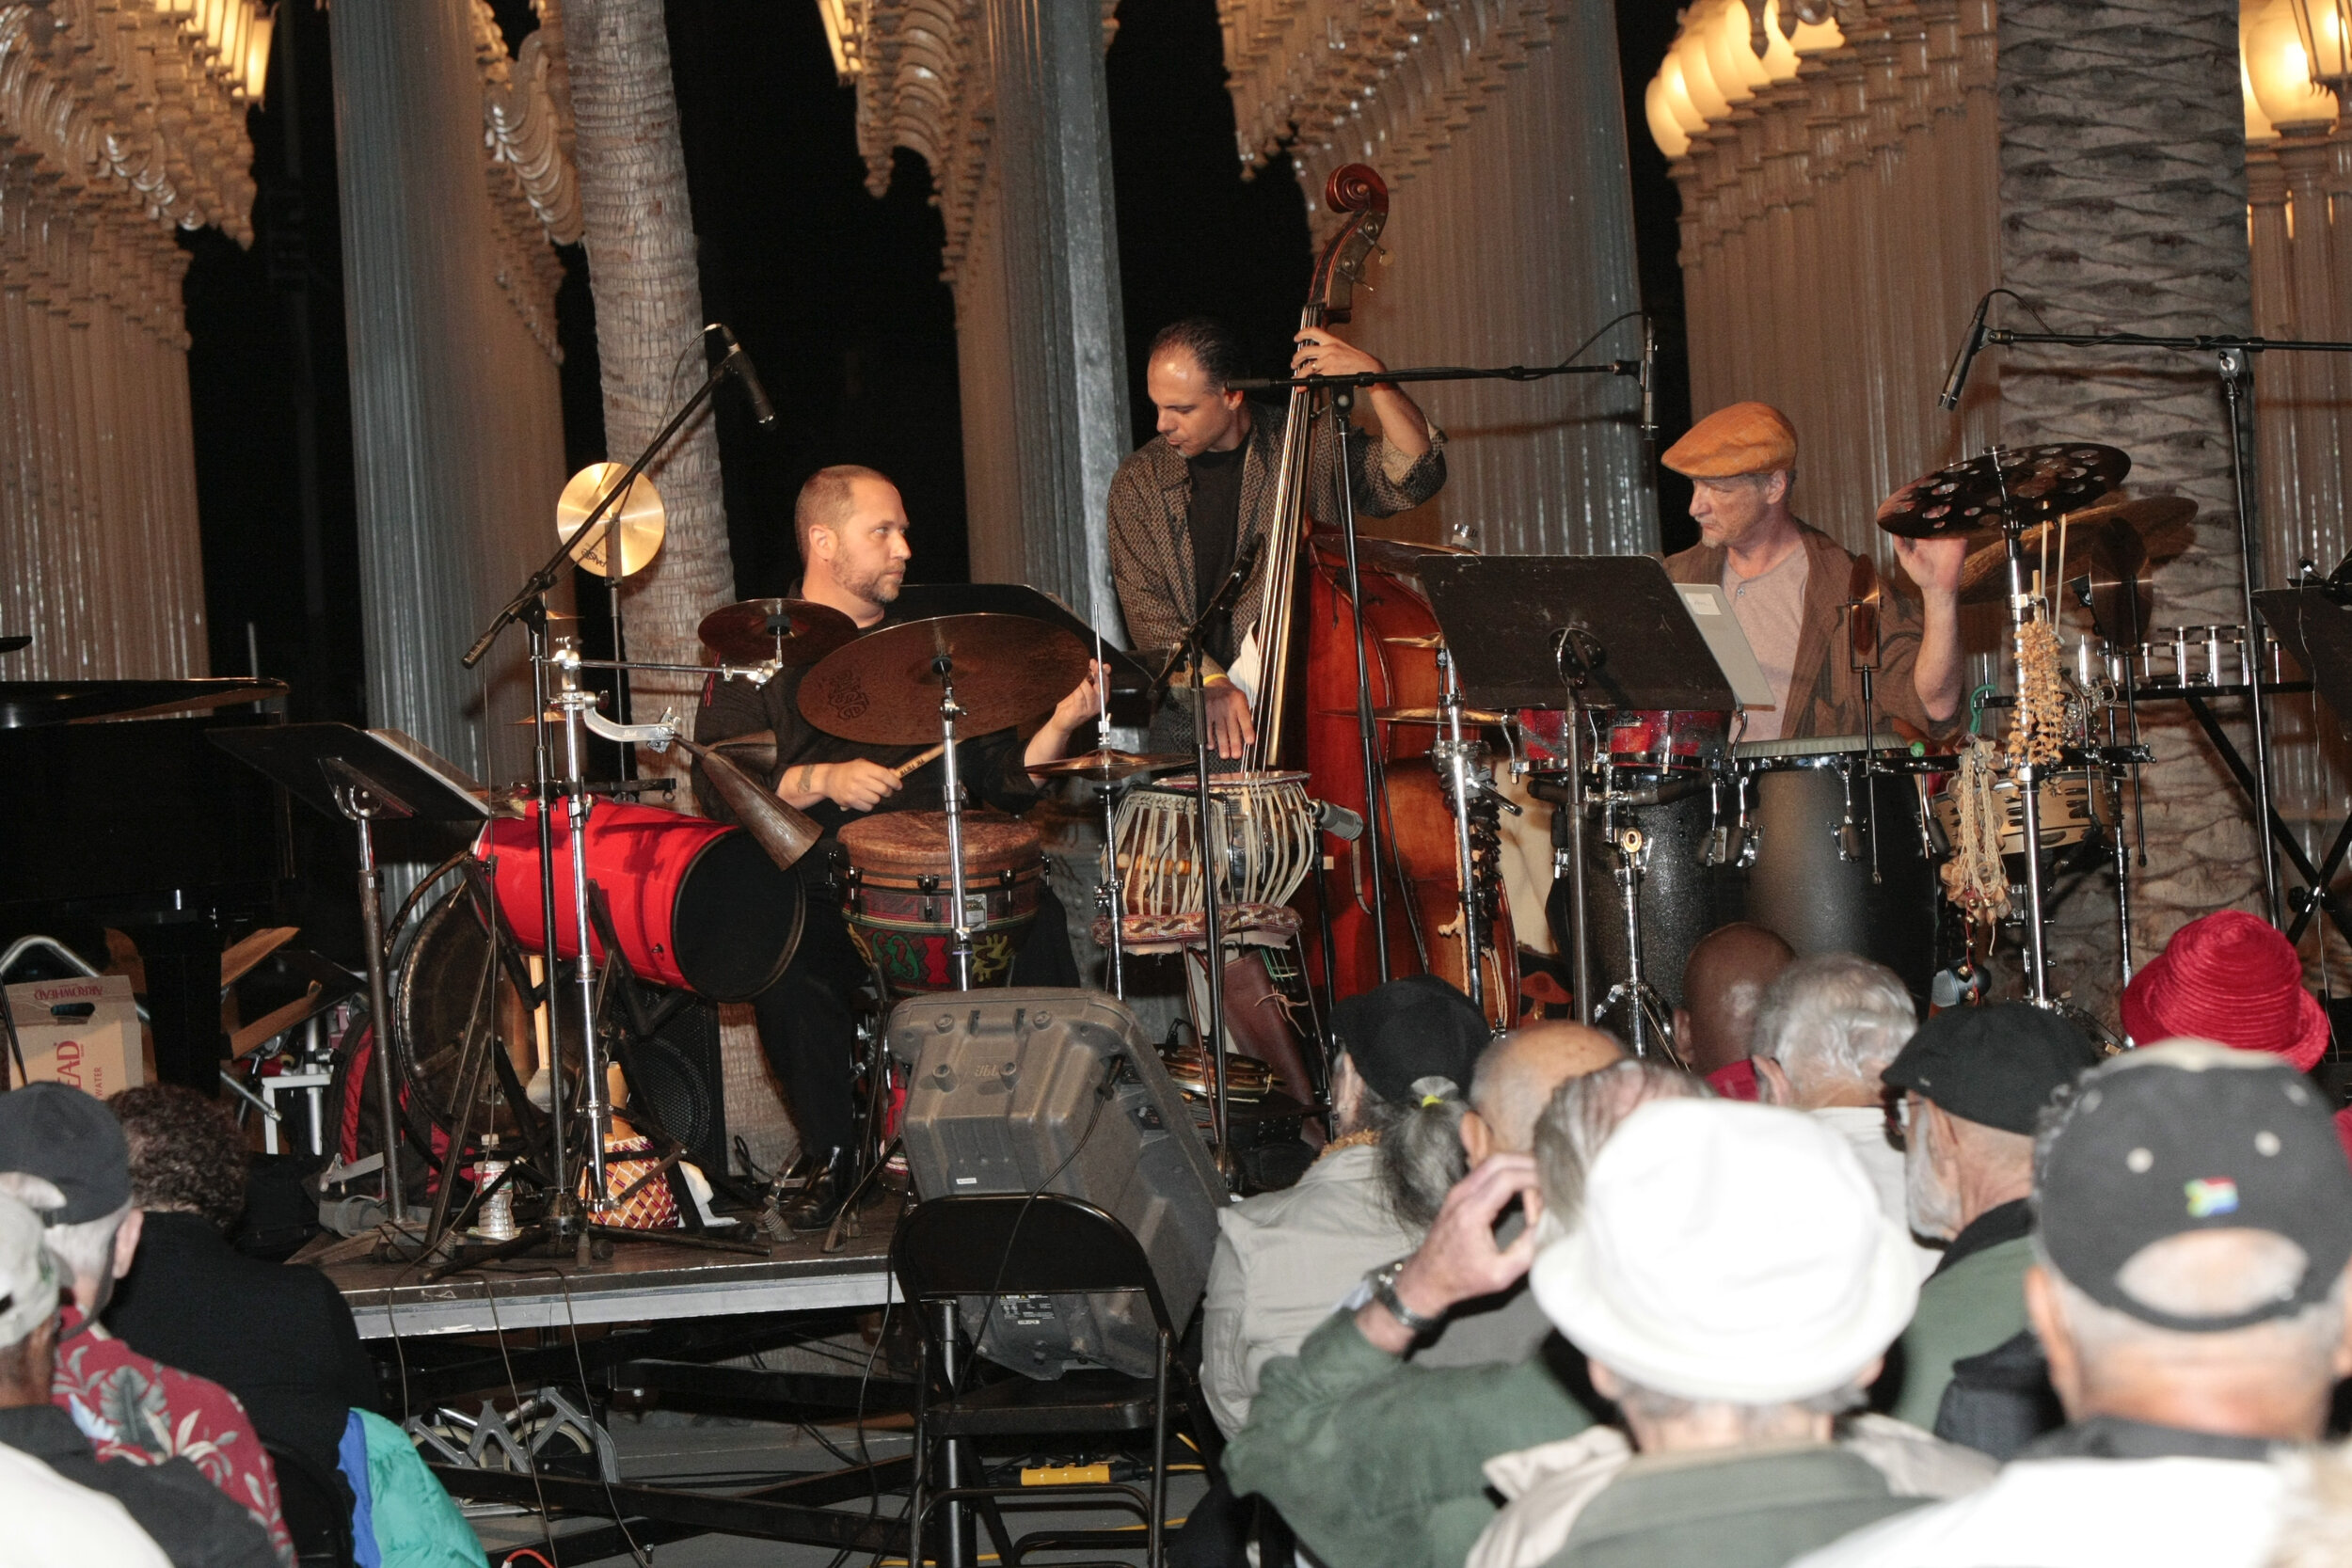 Randy Gloss, Chris Colangelo, Brad Dutz (with Larry Karush).  Angel City Jazz Festival 2011  at LACMA, Los Angeles CA, September 23rd, 2011